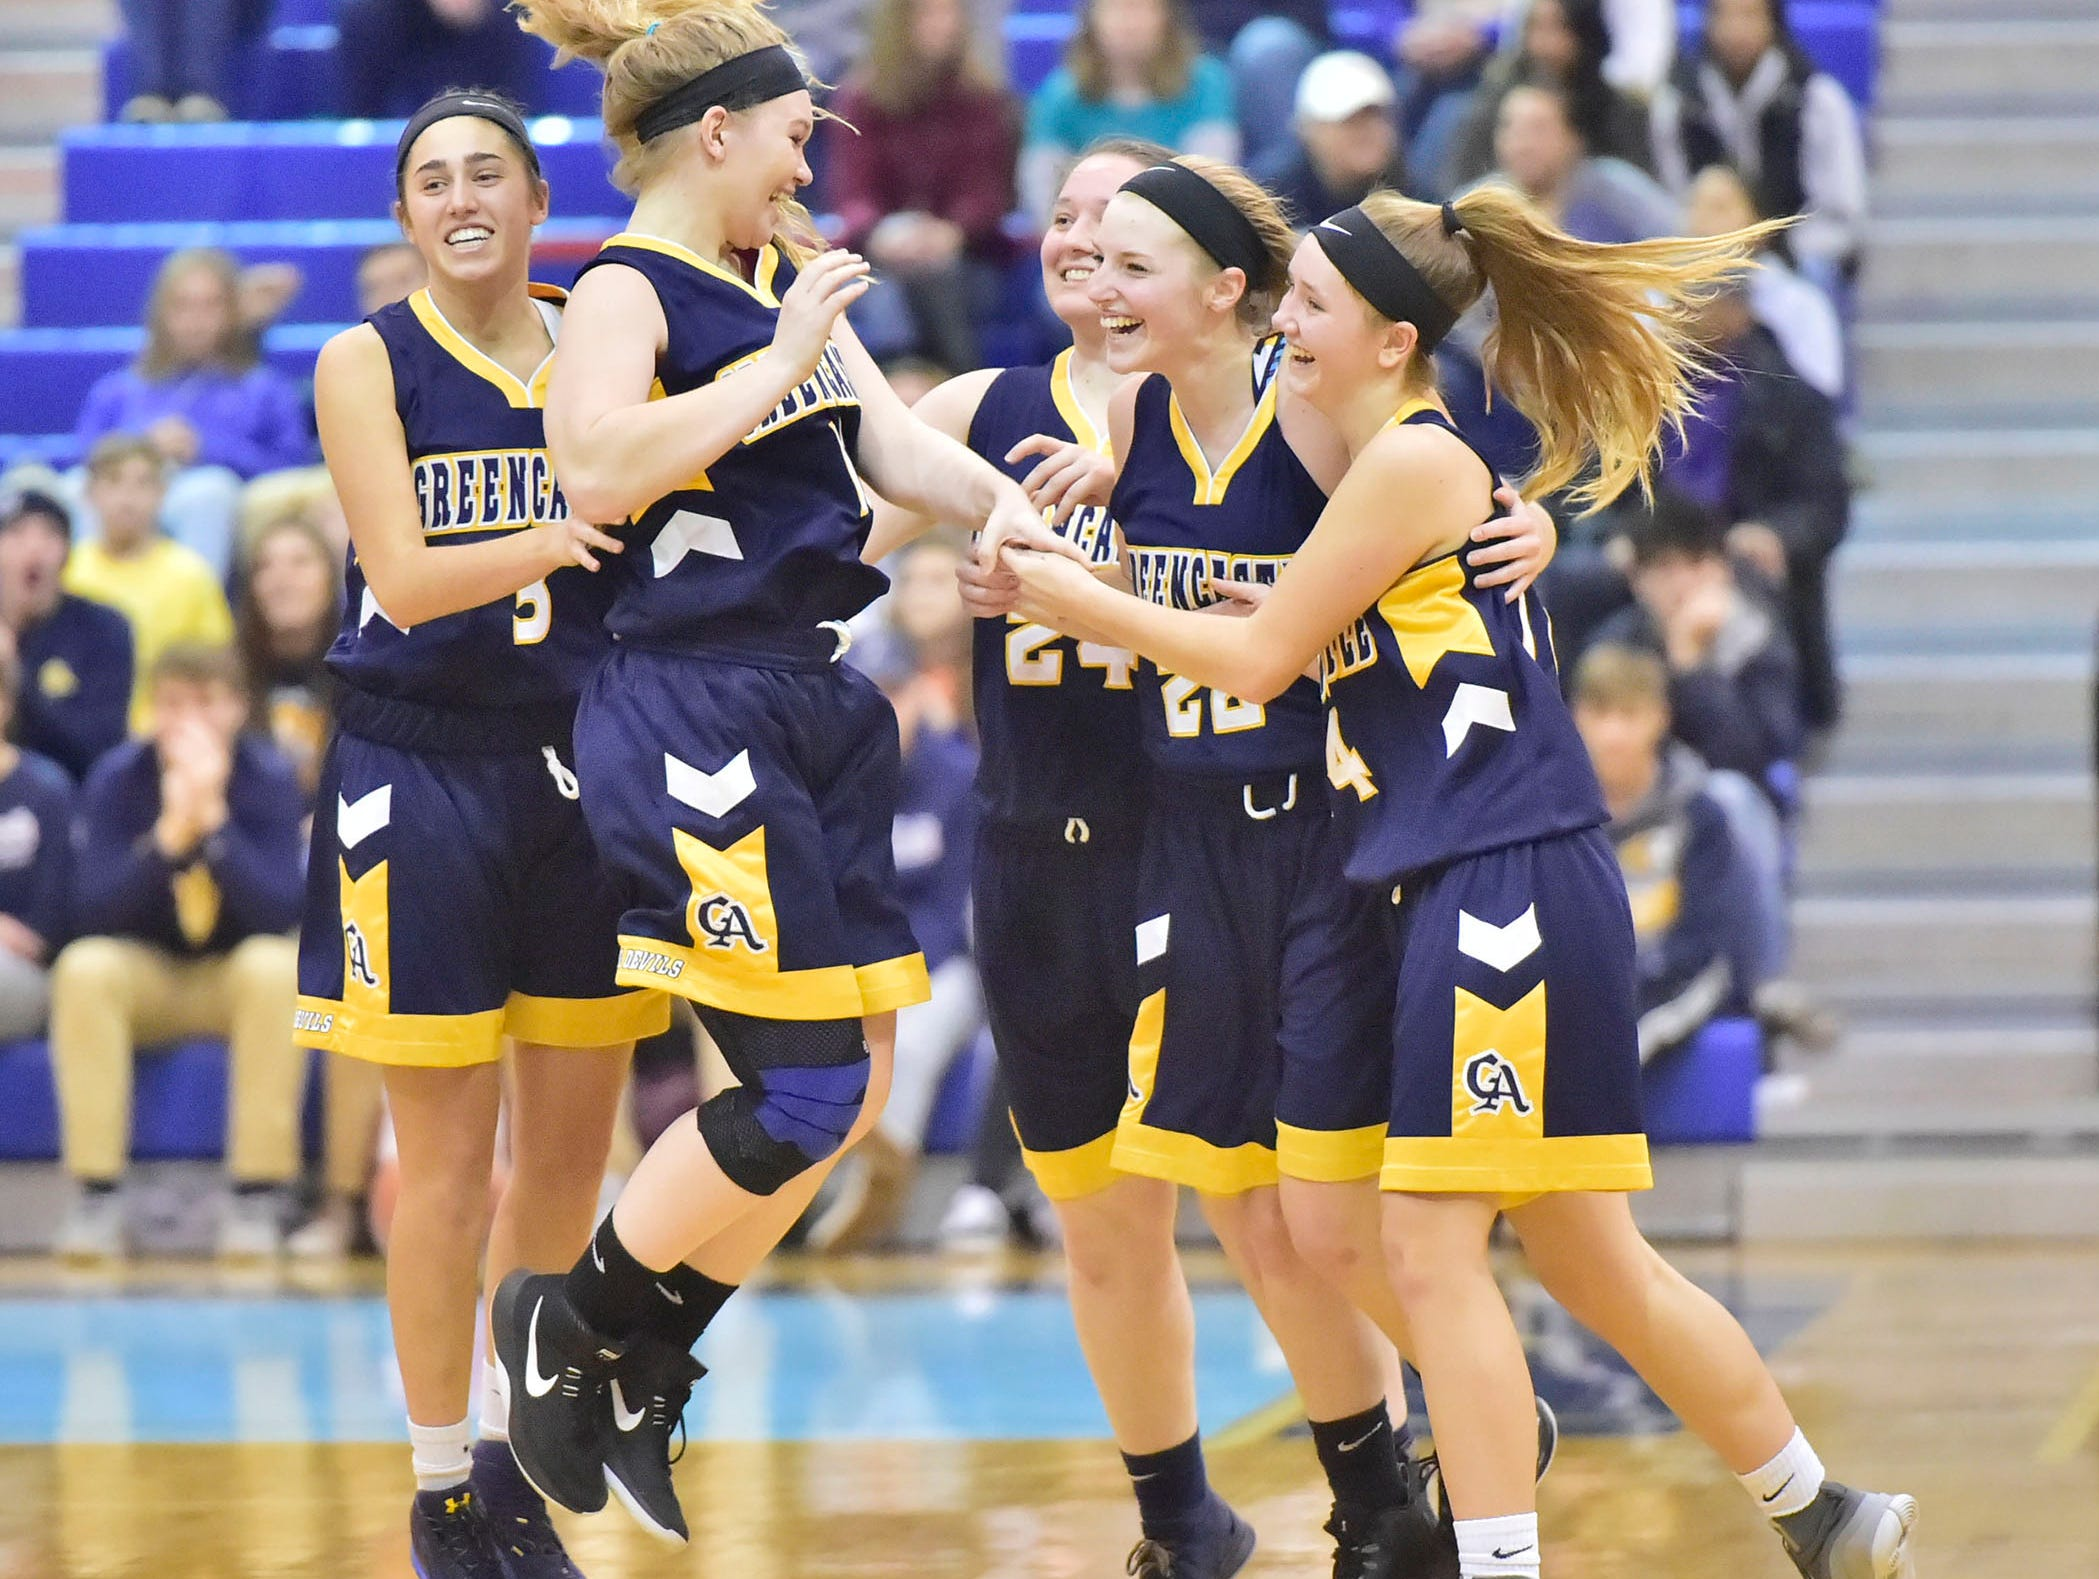 Greencastle teammatres celebrate after a  26-22 win over Chambersburg during the finals at Franklin County Tip-Off Tournament, Saturday, Dec. 8, 2018.